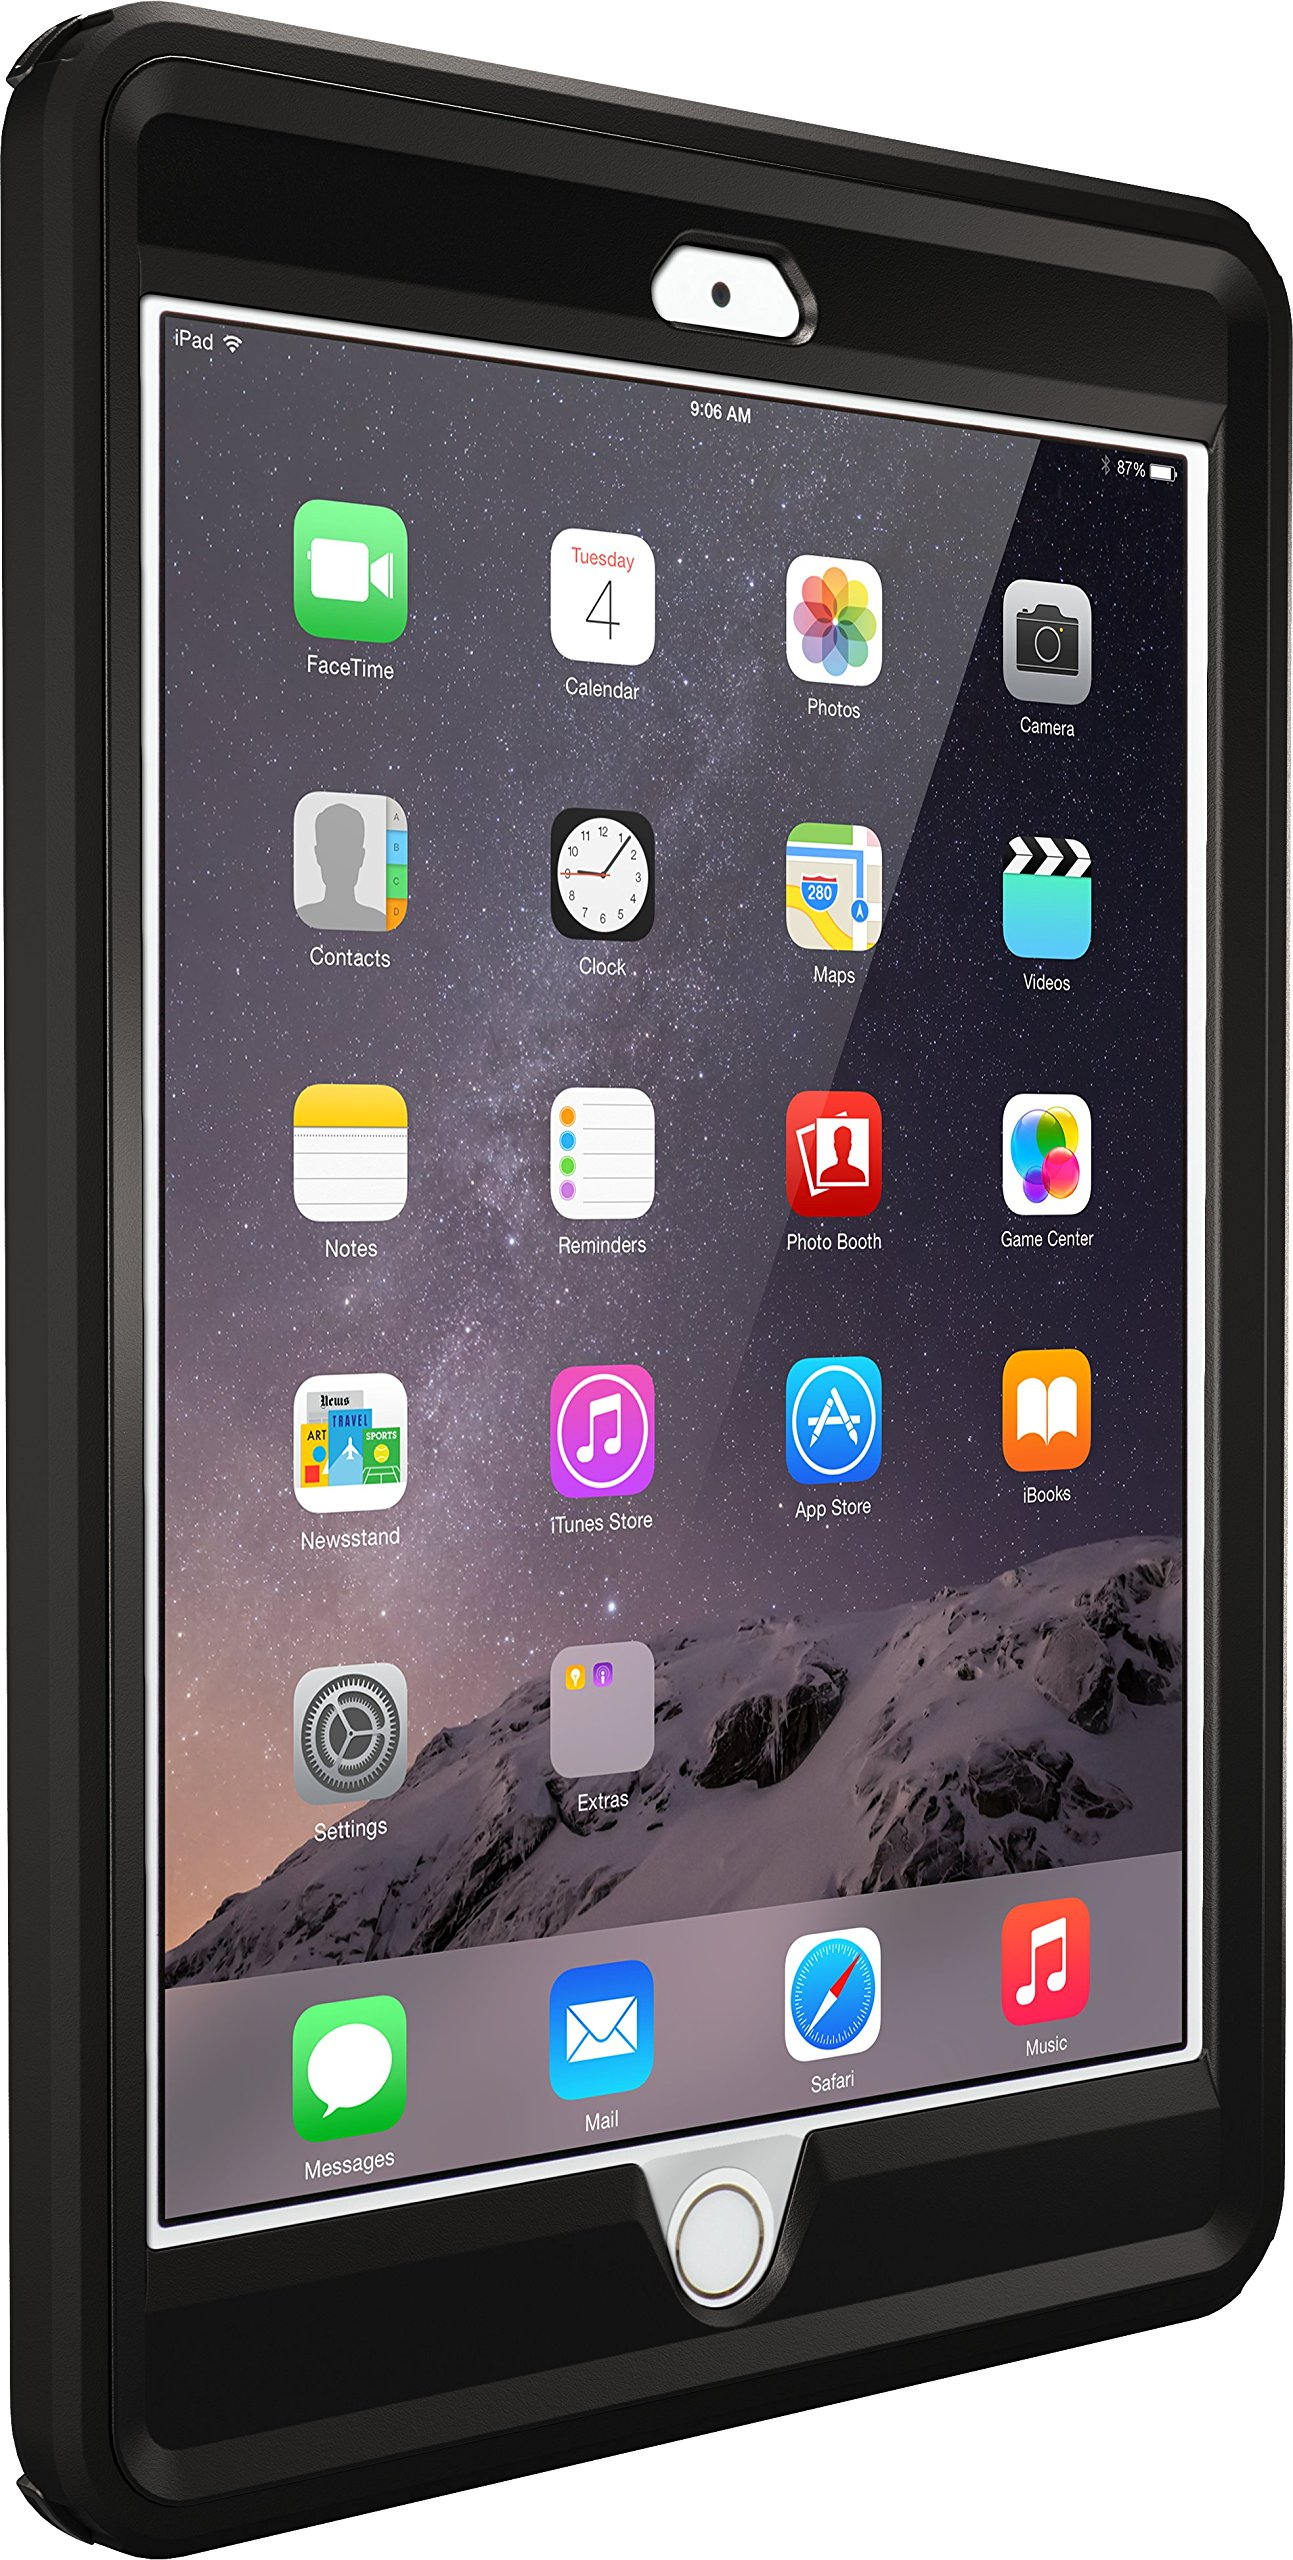 OtterBox DEFENDER SERIES Case for iPad Mini 1/2/3 - Retail Packaging - BLACK by OtterBox